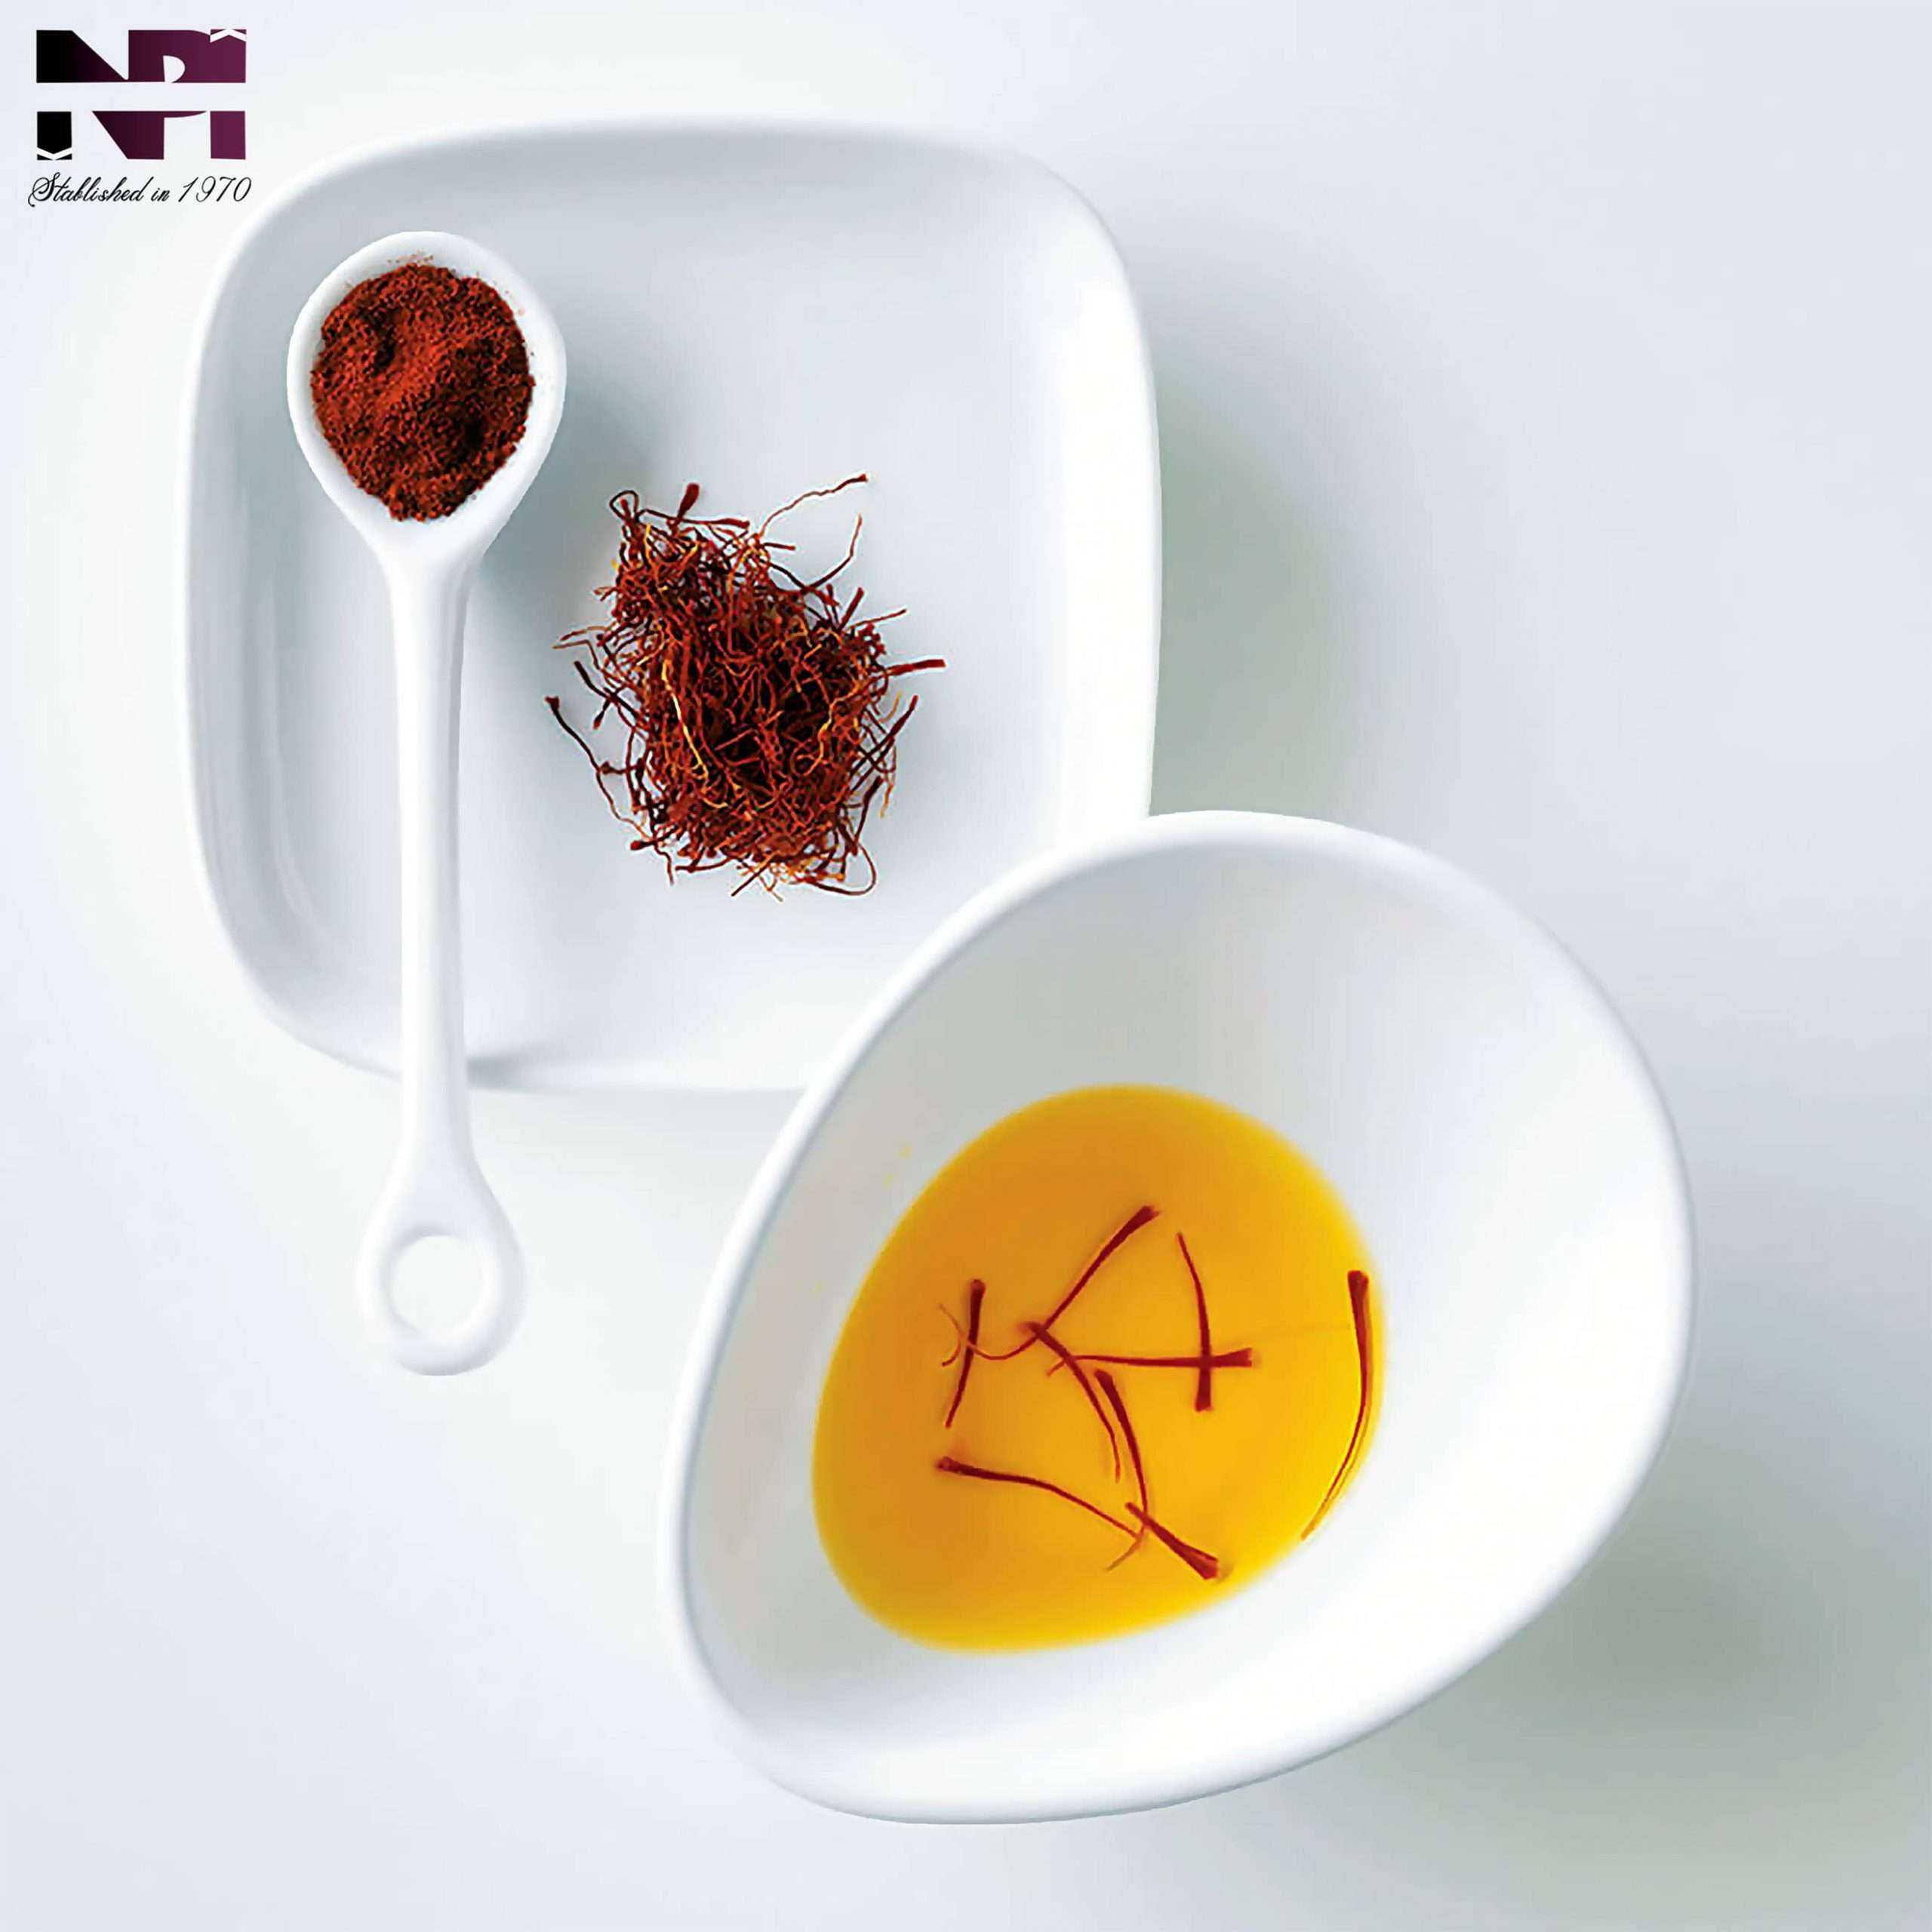 choose and buy the best type of saffron